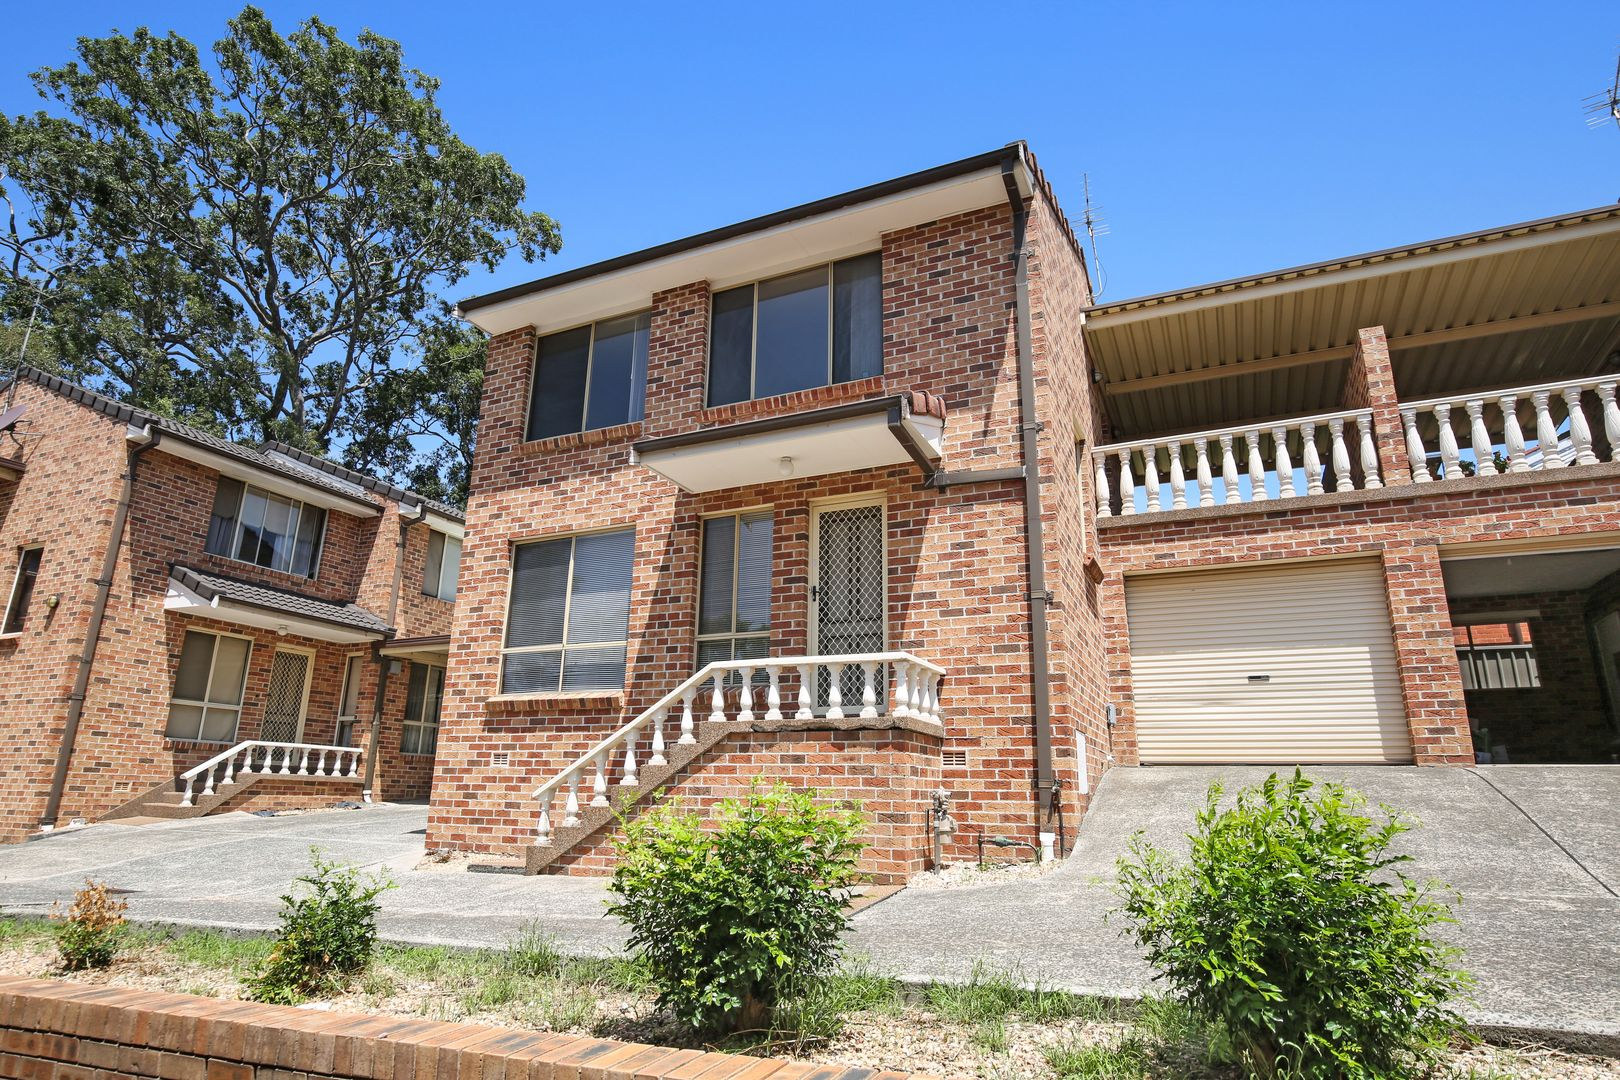 2/65 Gilmore Street, West Wollongong NSW 2500, Image 0